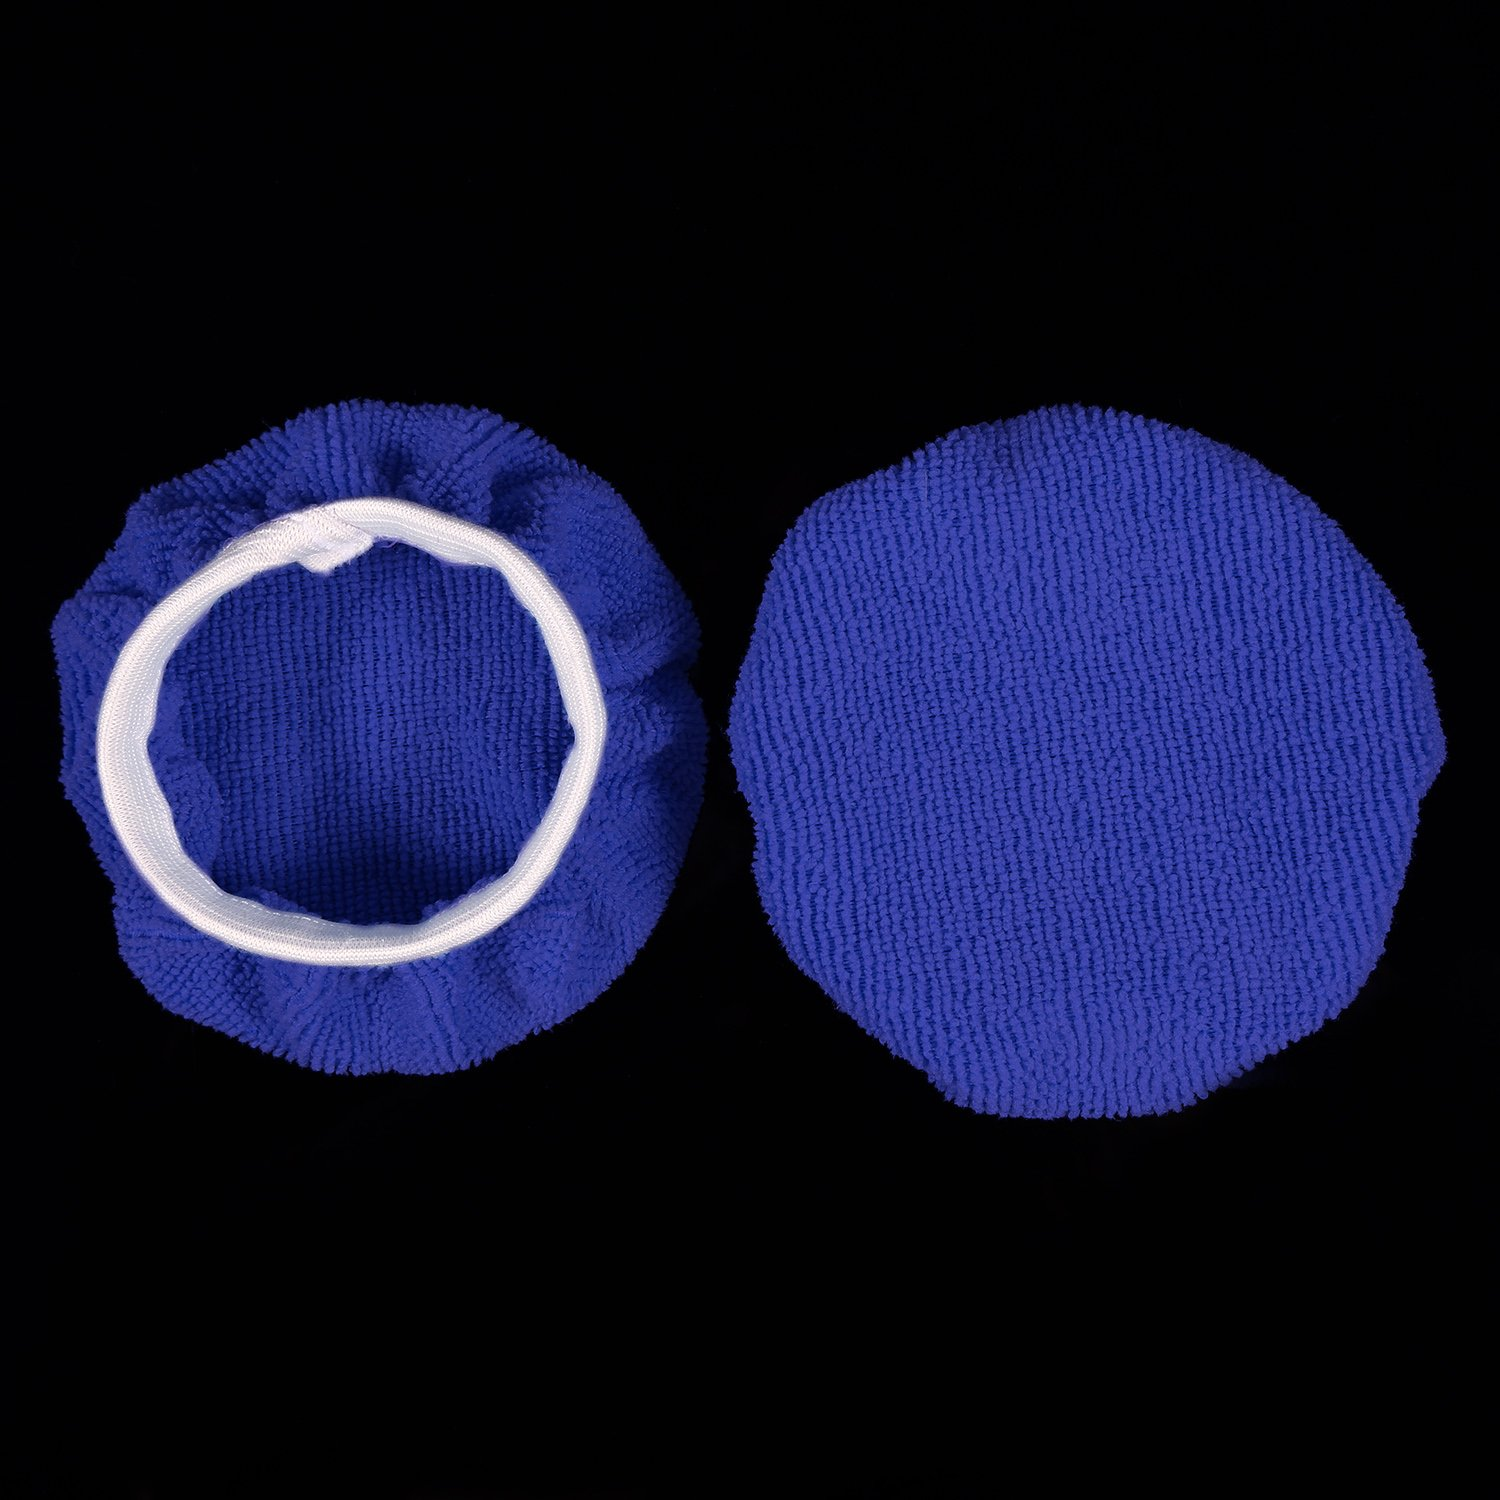 TecUnite 8 Pack Polishing Bonnet Buffing Pad Cover Soft Microfiber Car Polisher Pad Bonnet for Car Polisher (Dark Blue, 7 to 8 Inches) by TecUnite (Image #7)